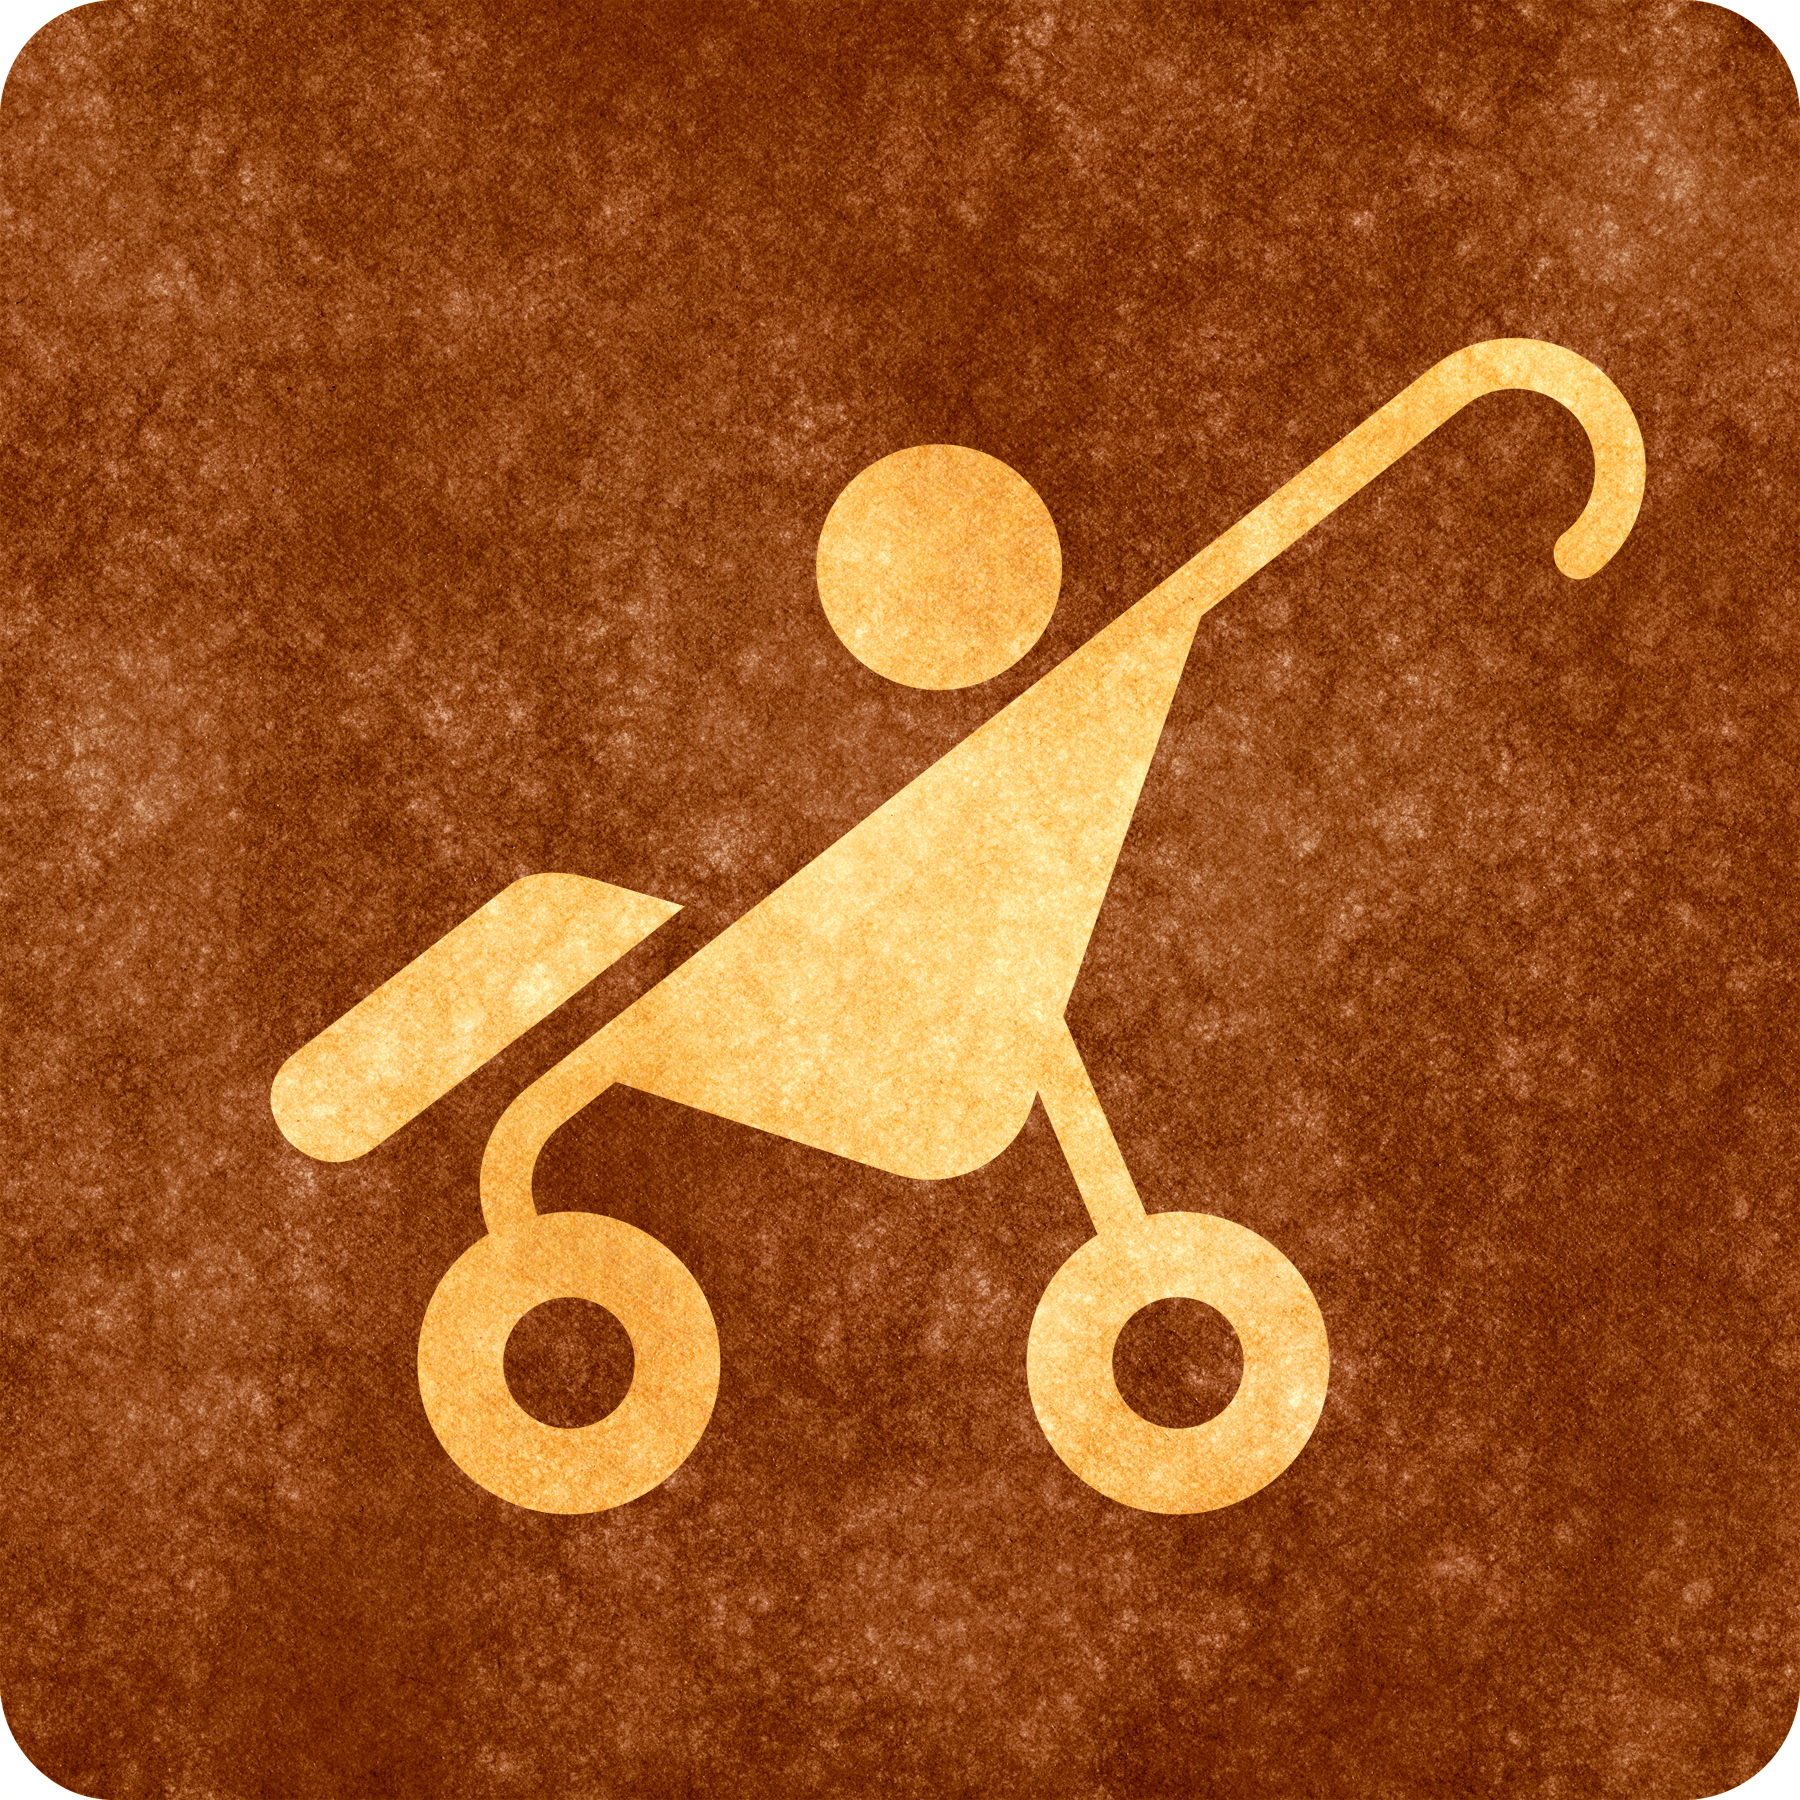 Sepia grunge sign - baby stroller photo